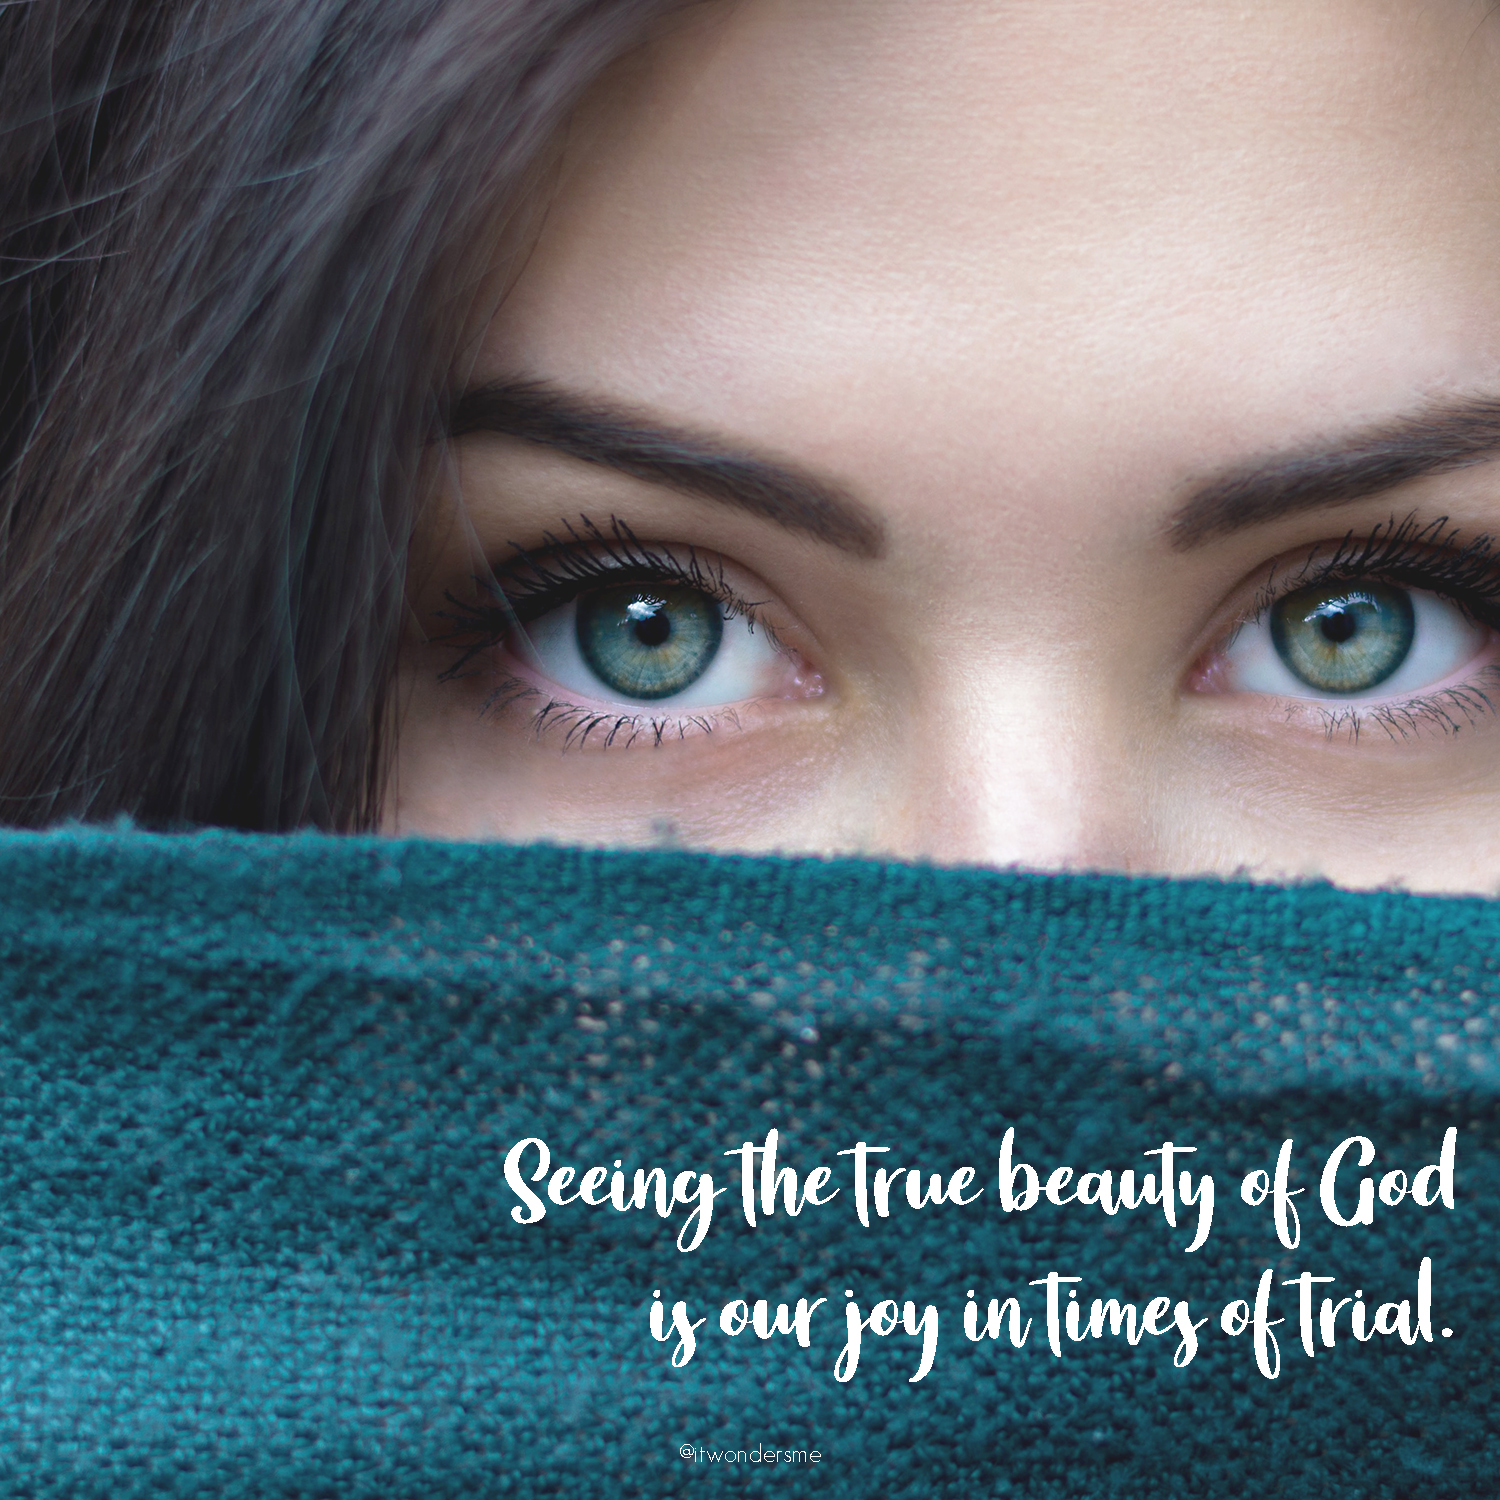 Seeing the beauty of God is our joy in times trial